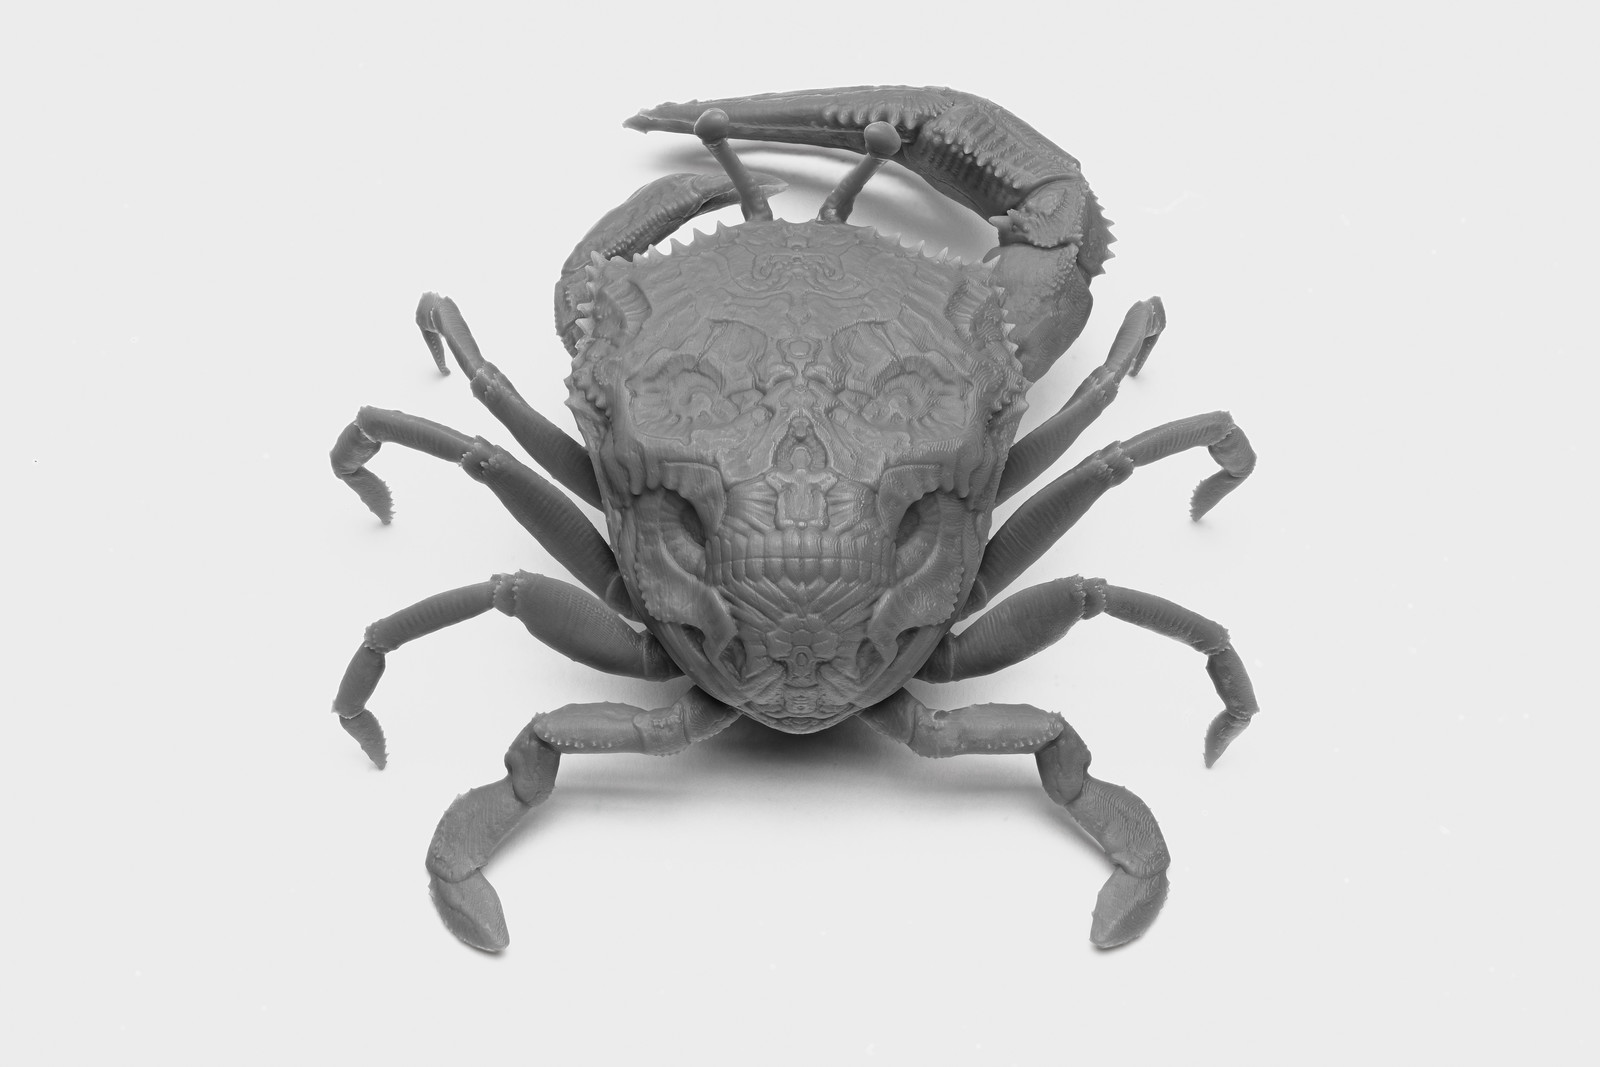 Skull Crab model designed by Tomas Wittelsbach, printed in Formlabs Grey Resin.